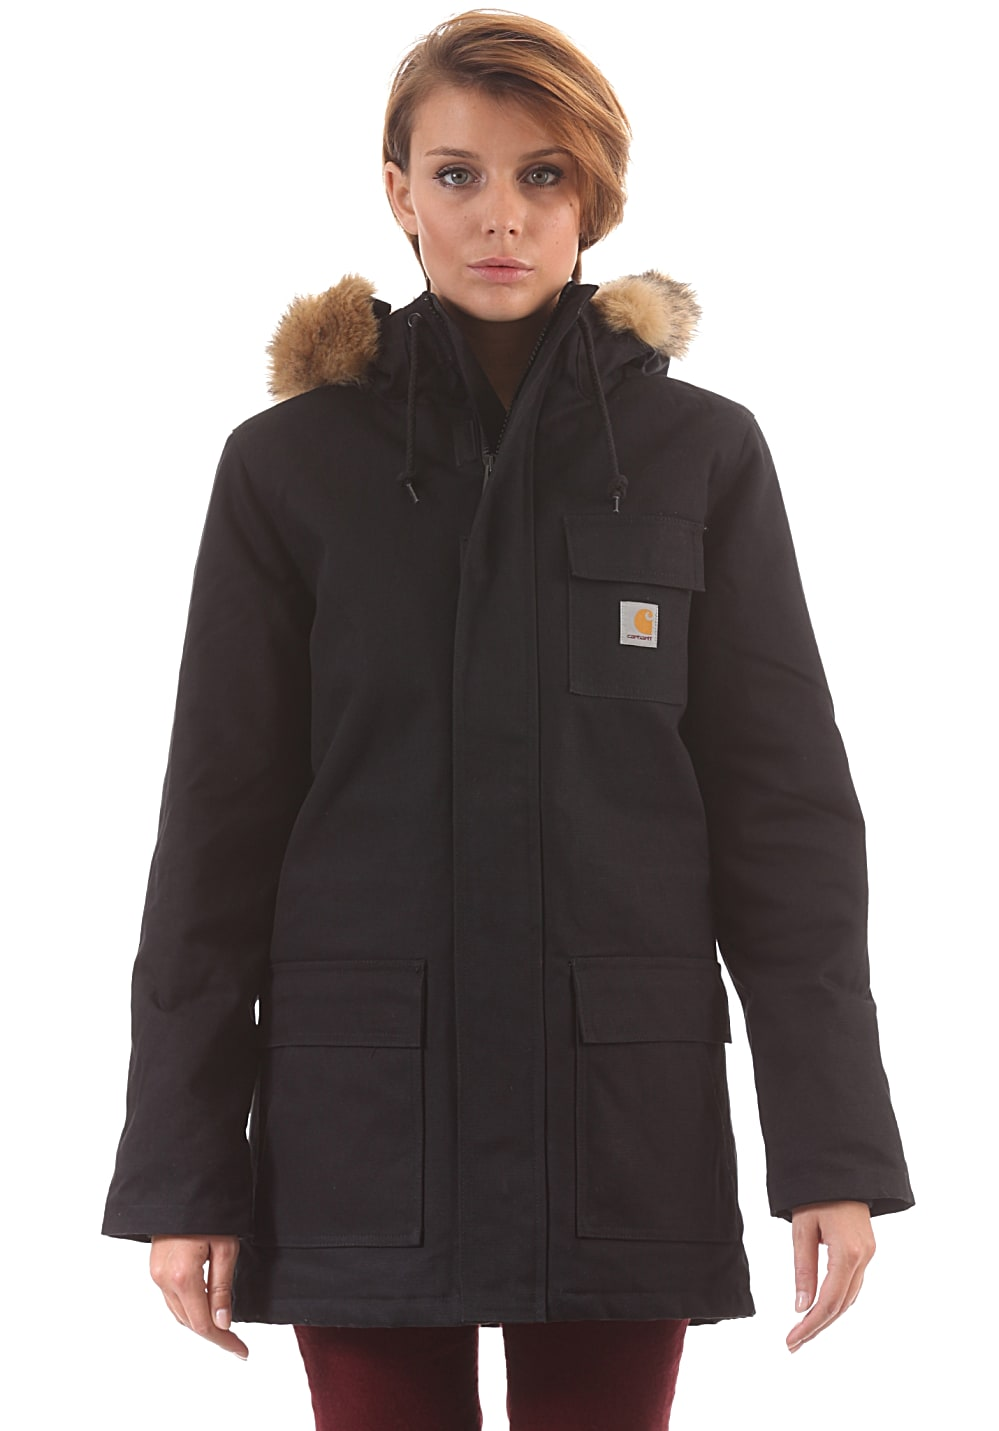 carhartt wip x 39 siberian parka jacke f r damen schwarz. Black Bedroom Furniture Sets. Home Design Ideas